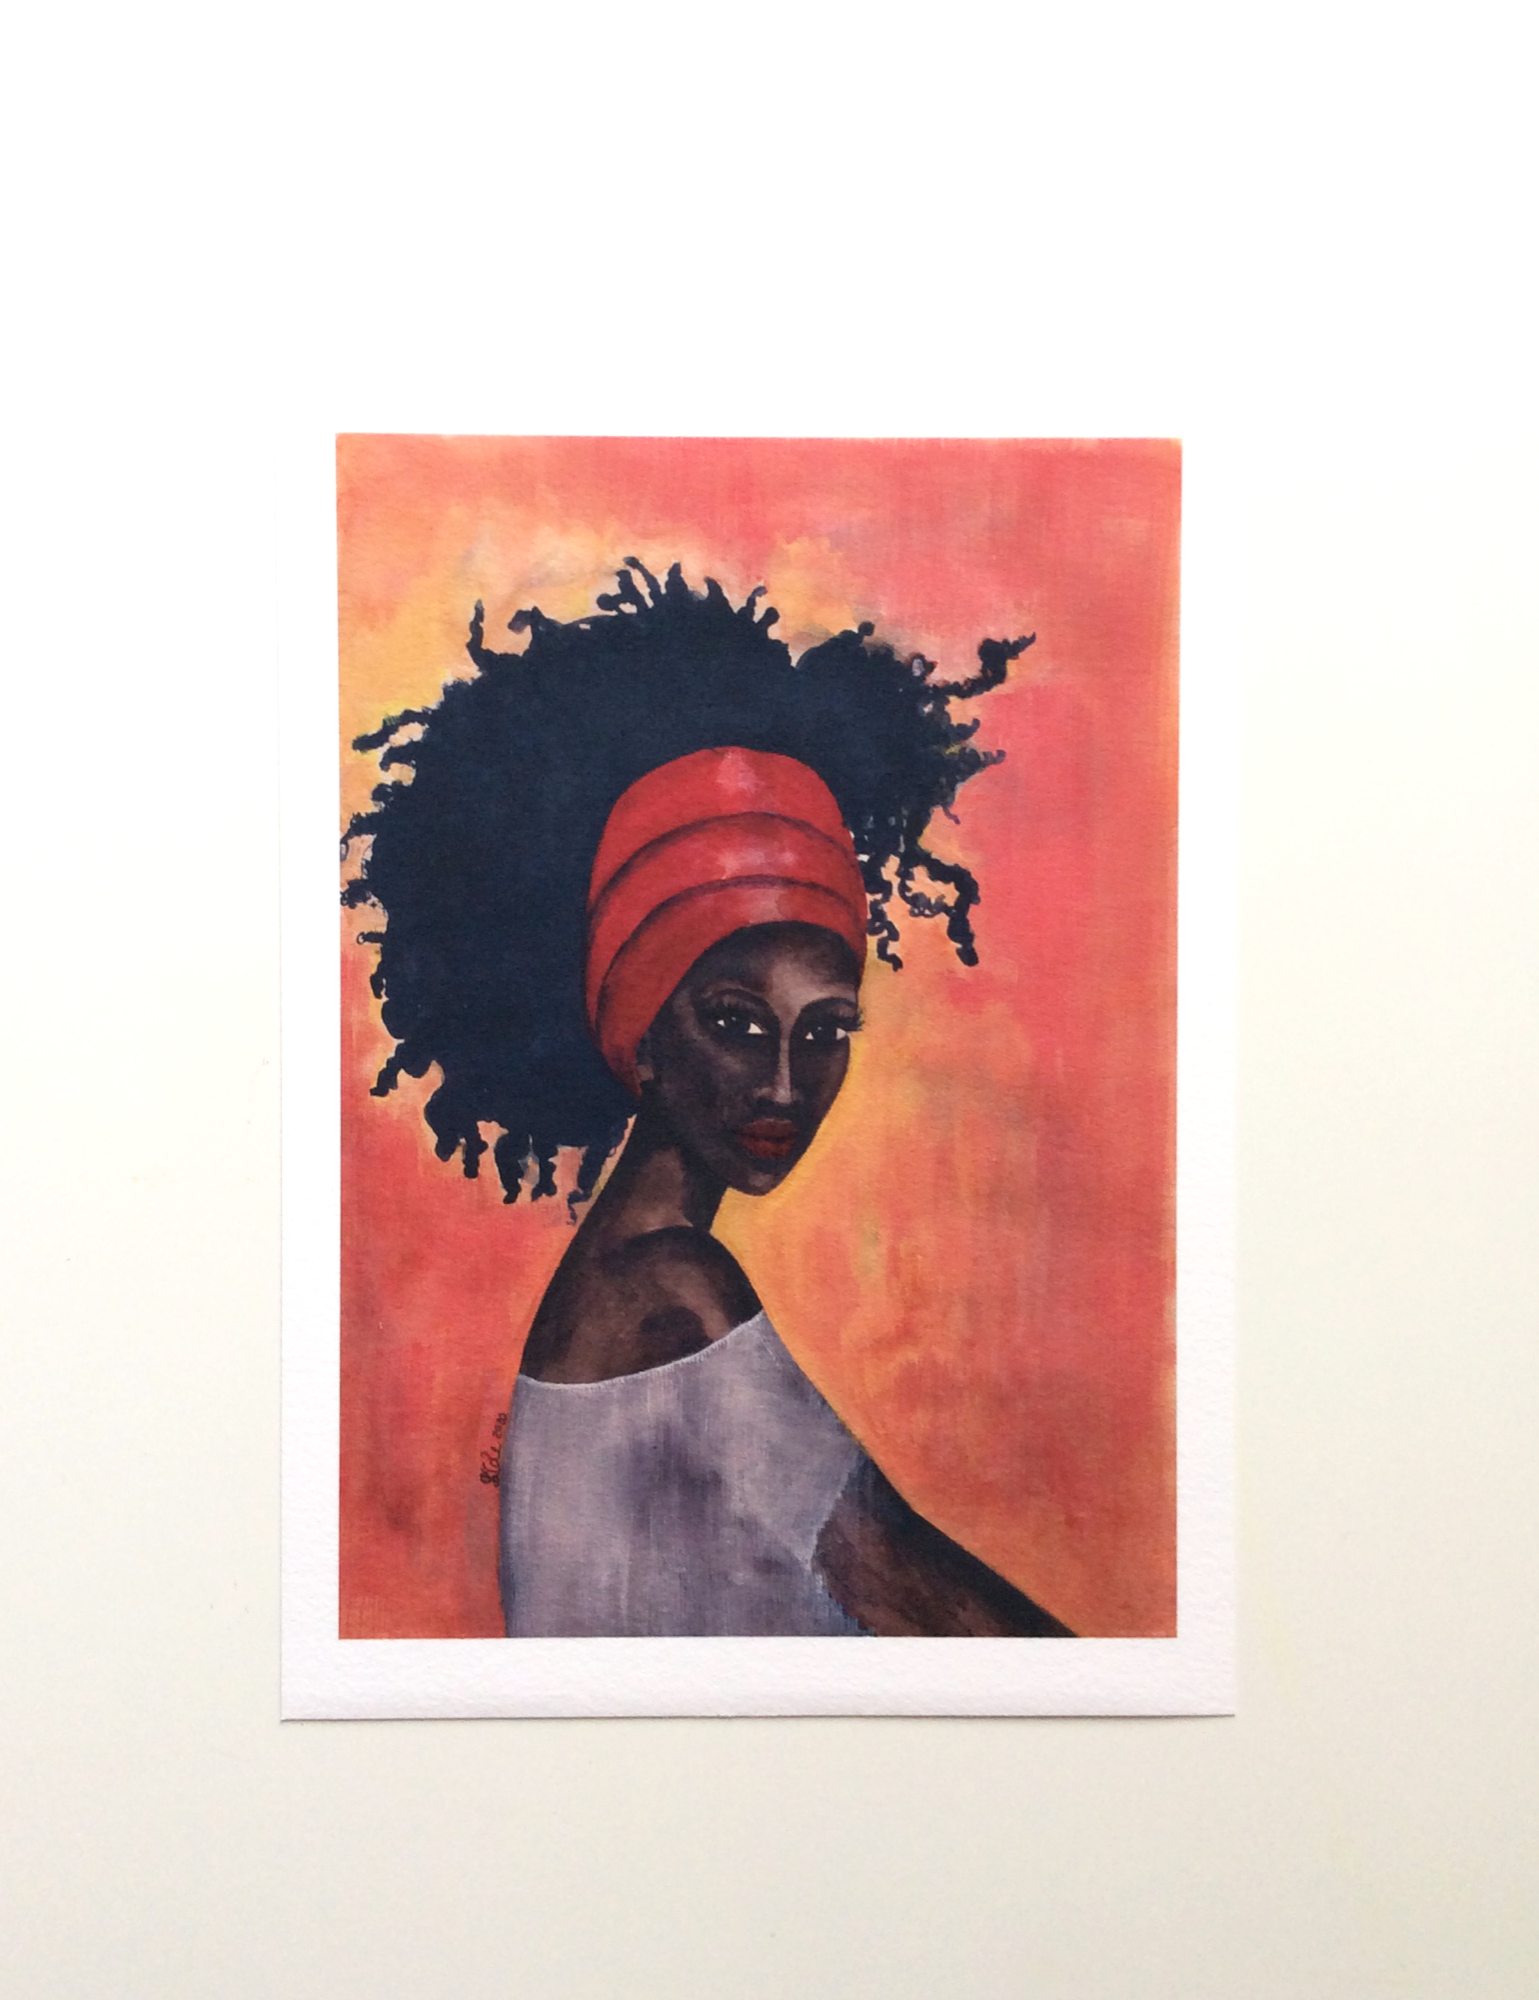 Black Woman Artwork print called 'Worthy' by Stacey-Ann Cole